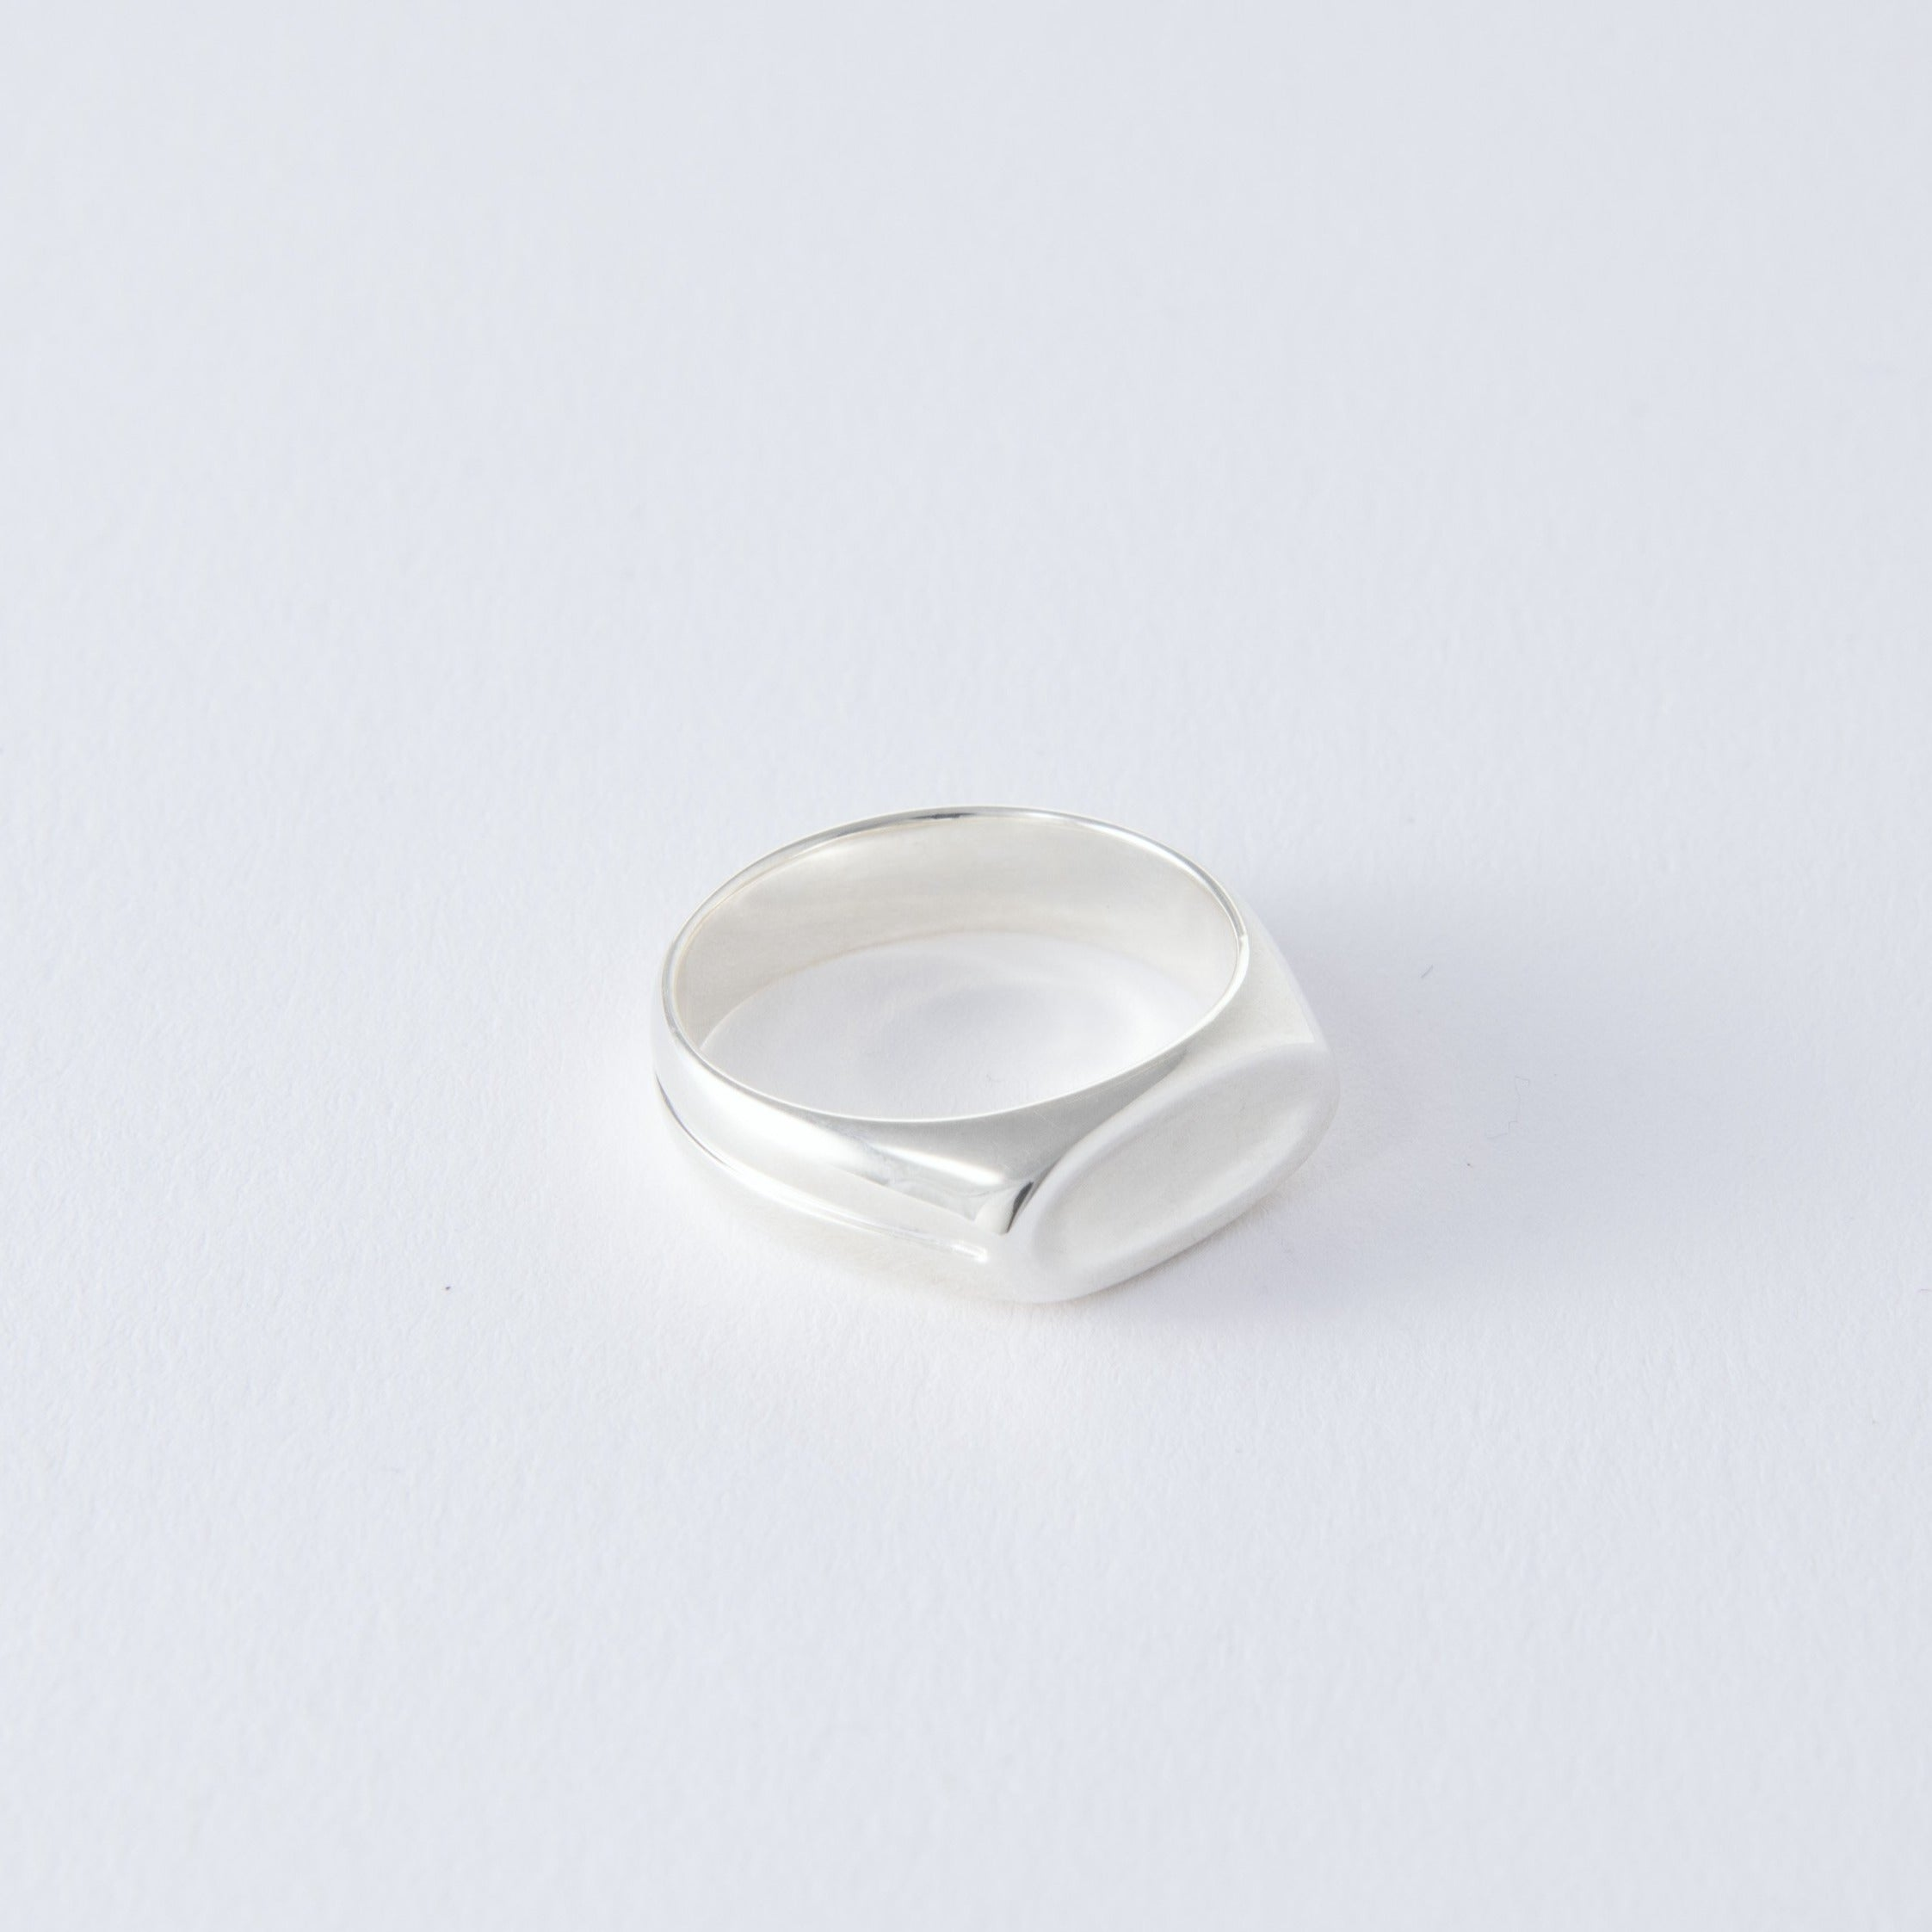 silver oval signet ring[made to order]